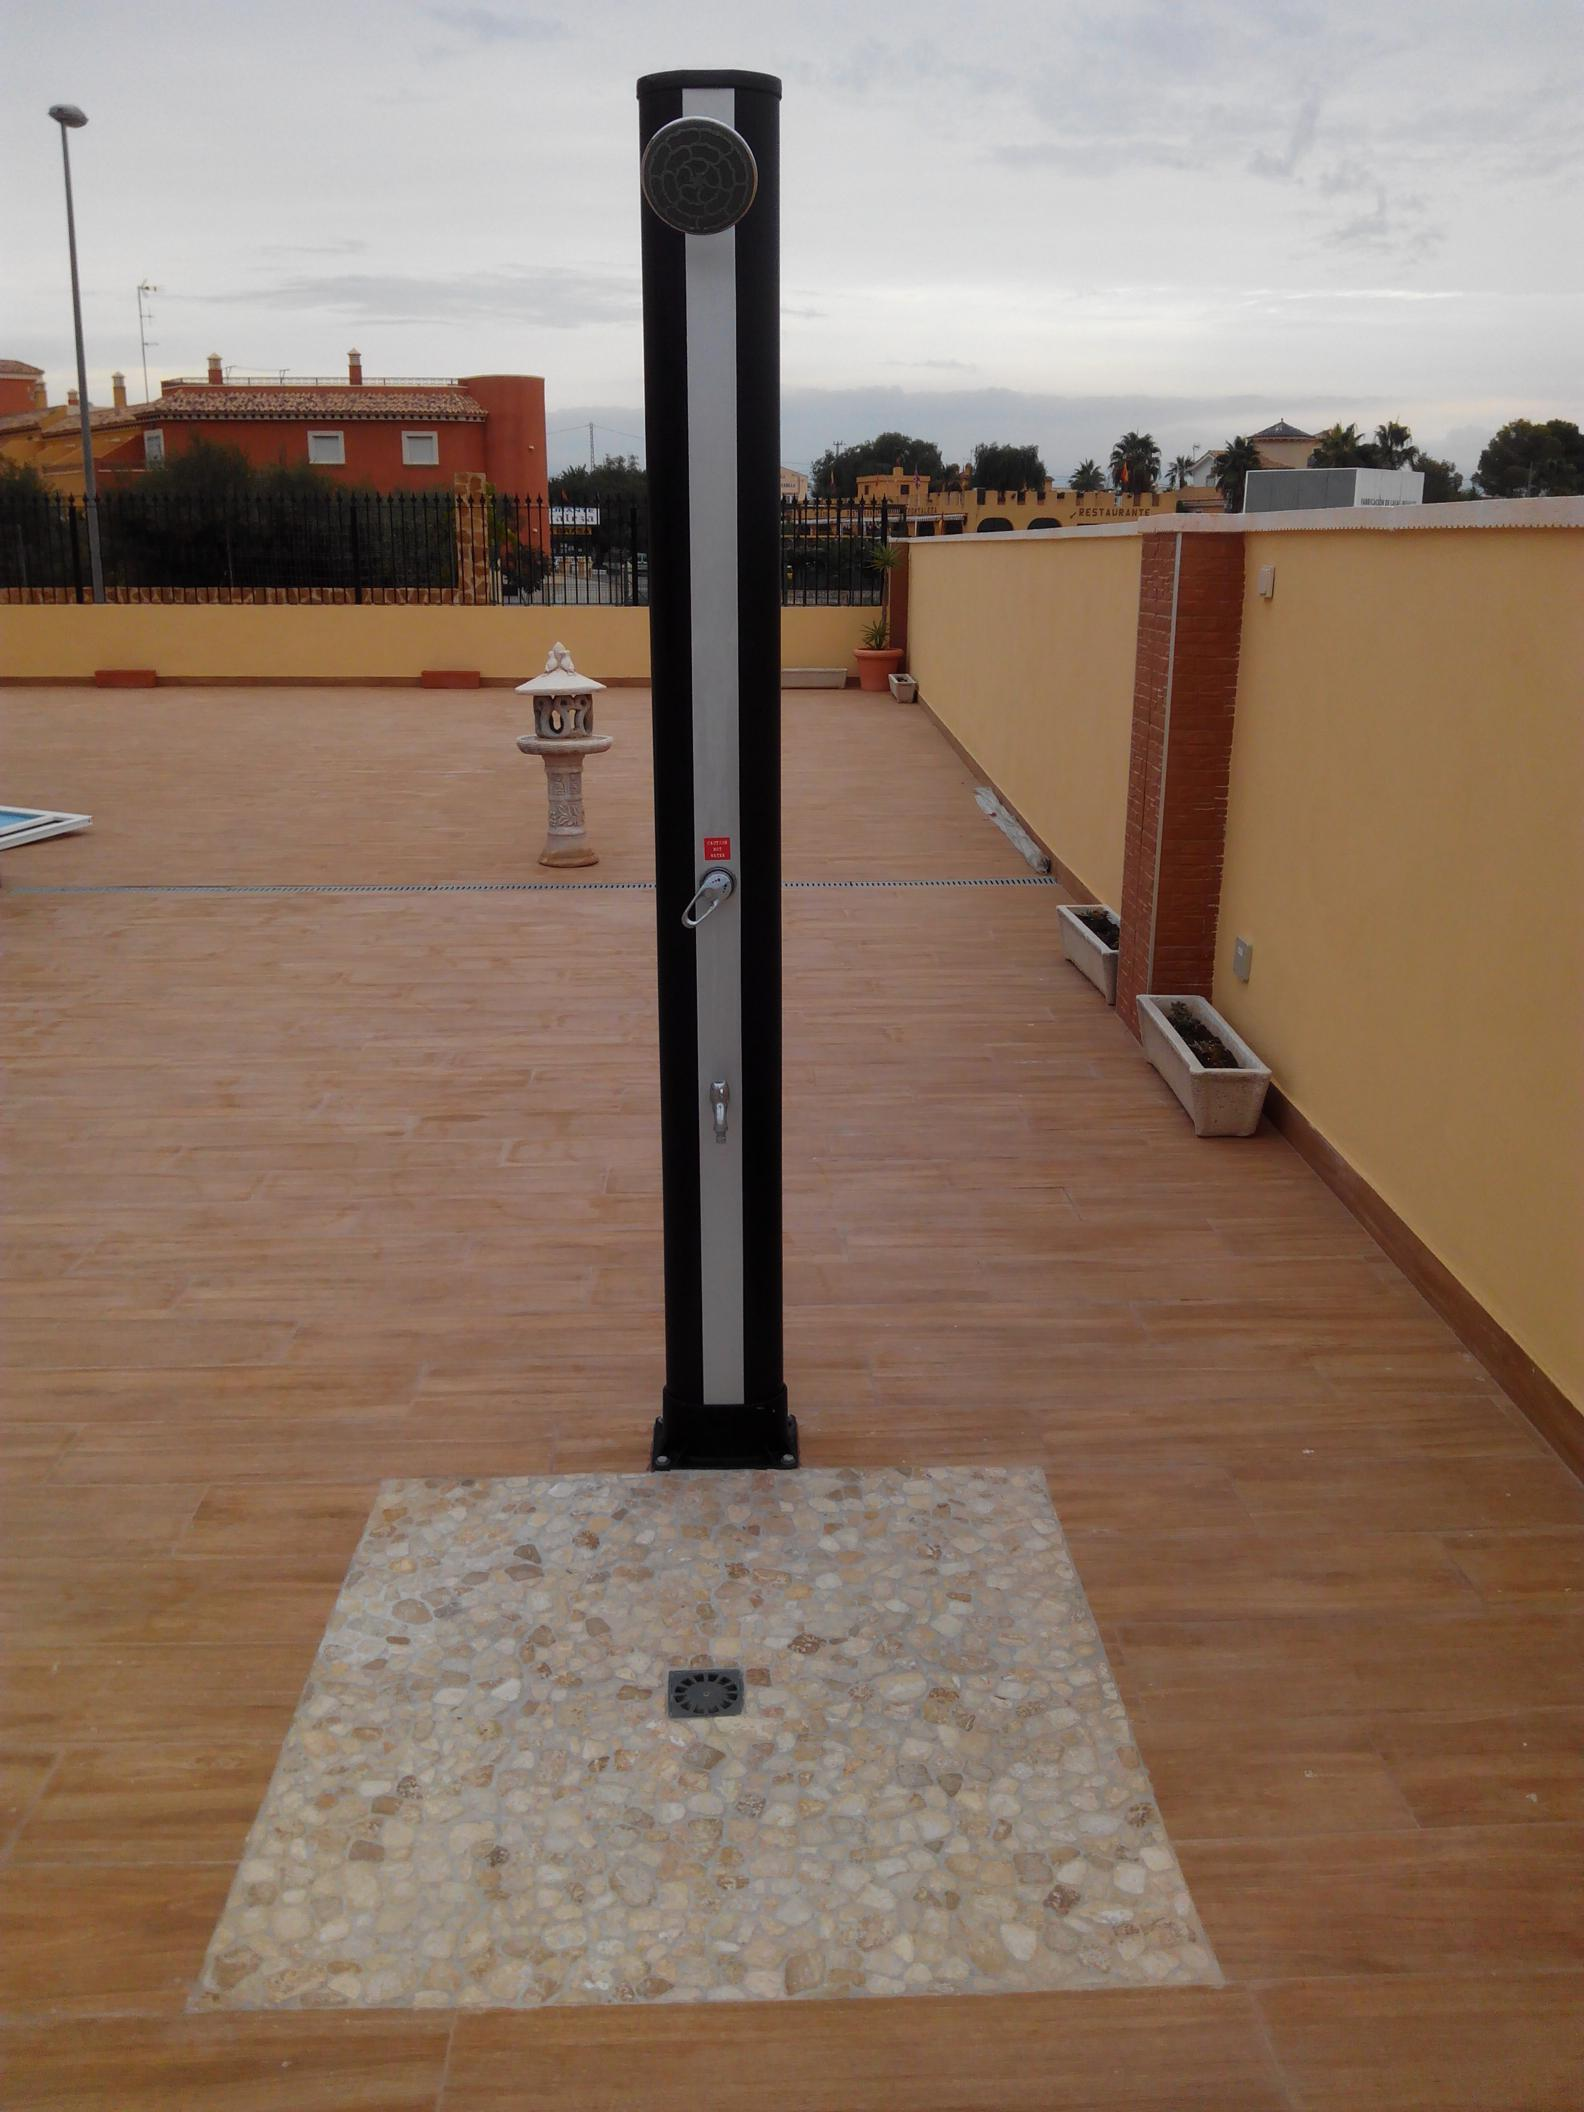 builder torrevieja orihuela ciudad quesada guardamar del segura bathroom shower